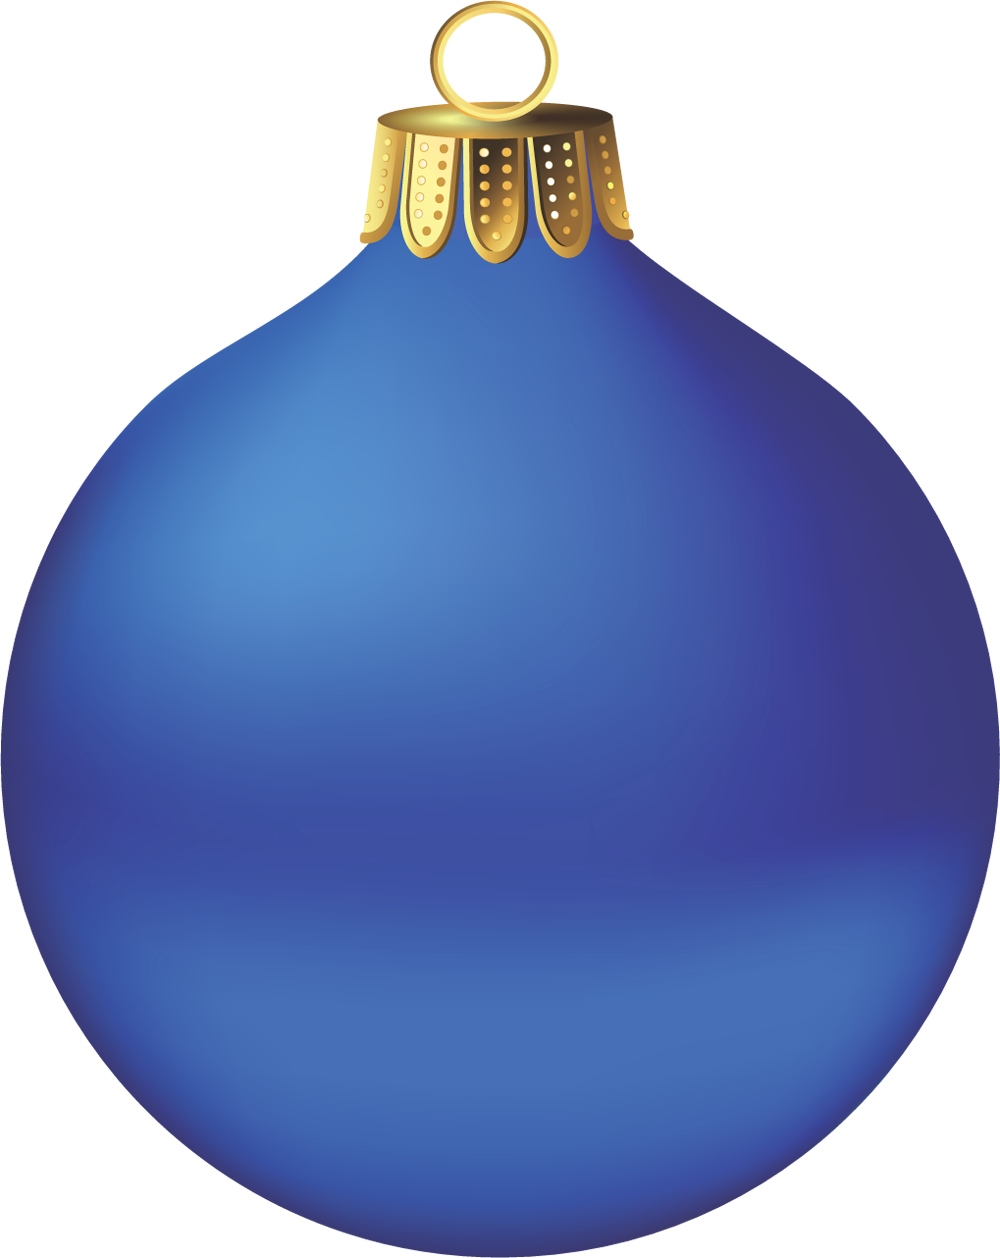 Christmas decorations clipart images - Image Result For Christmas Ornament